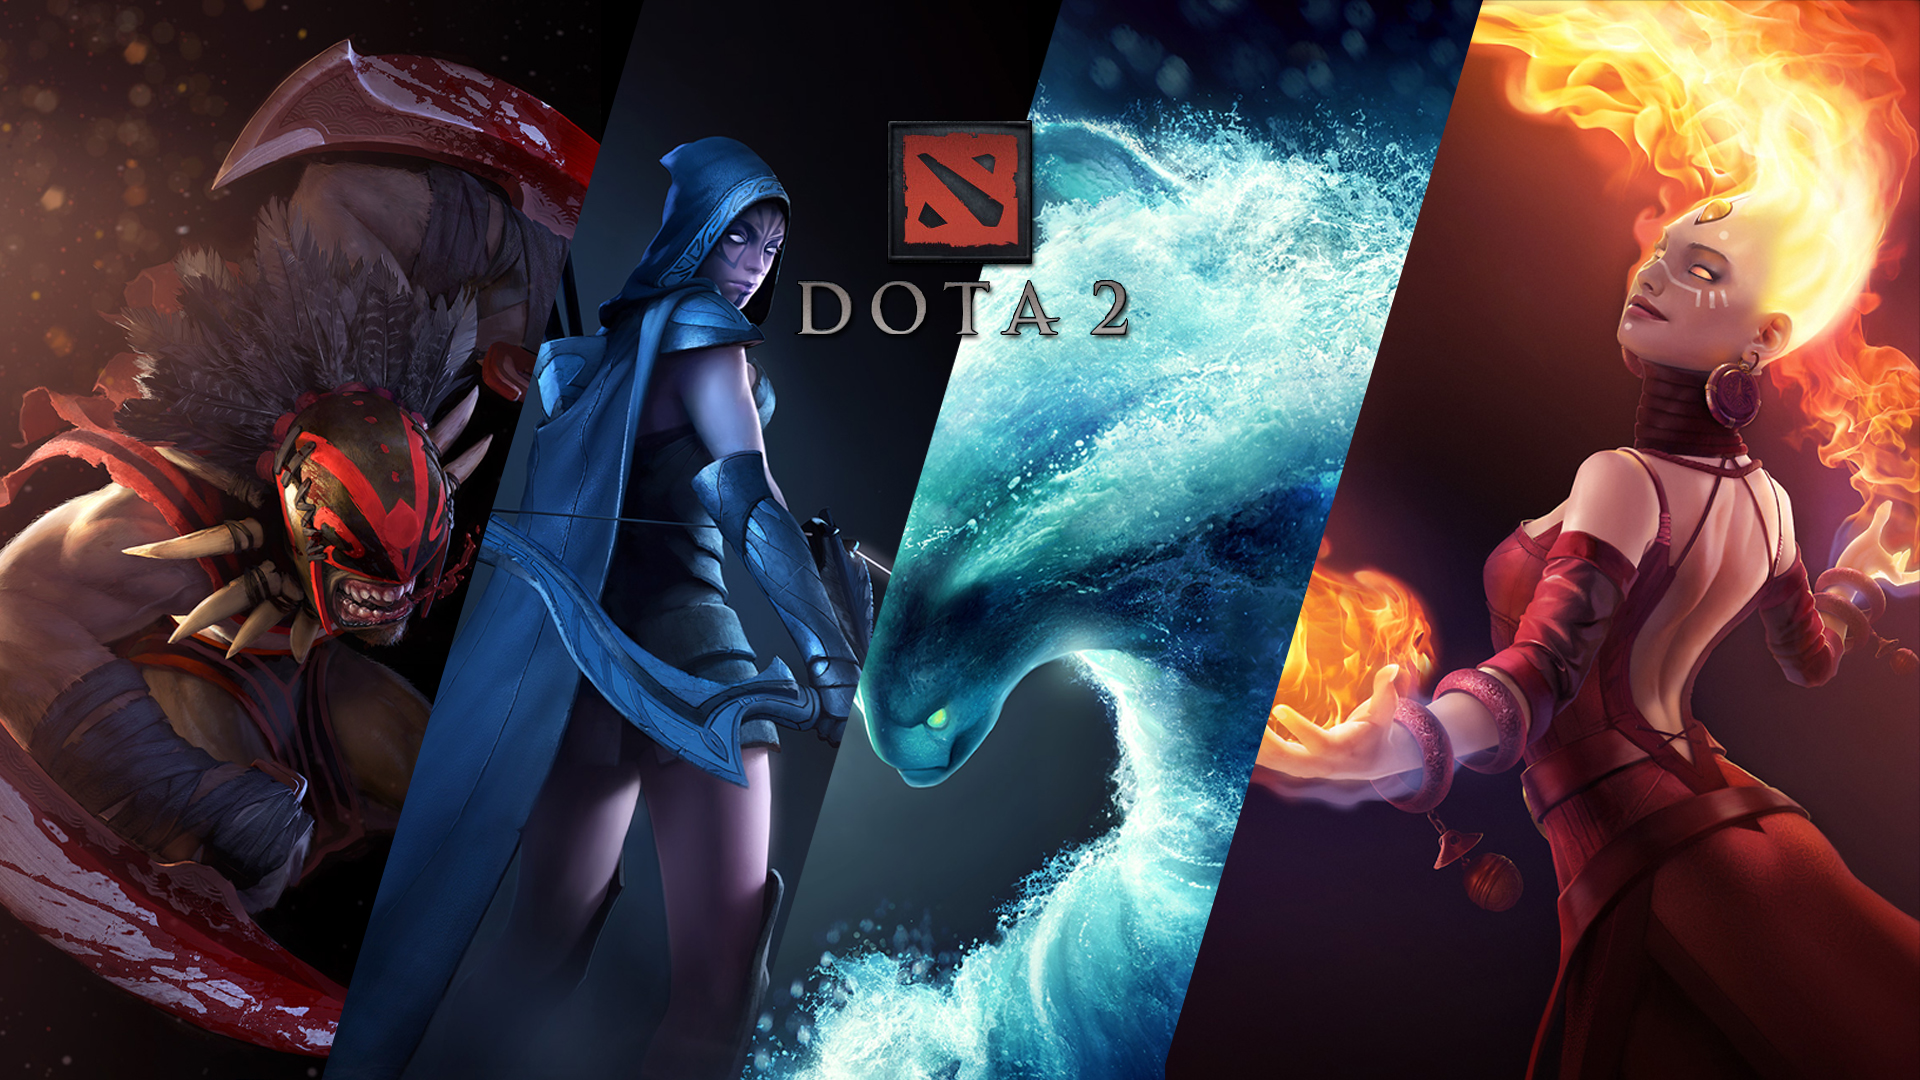 http://www.brokenjoysticks.net/wp-content/uploads/2012/04/dota2-wallpaper.jpg